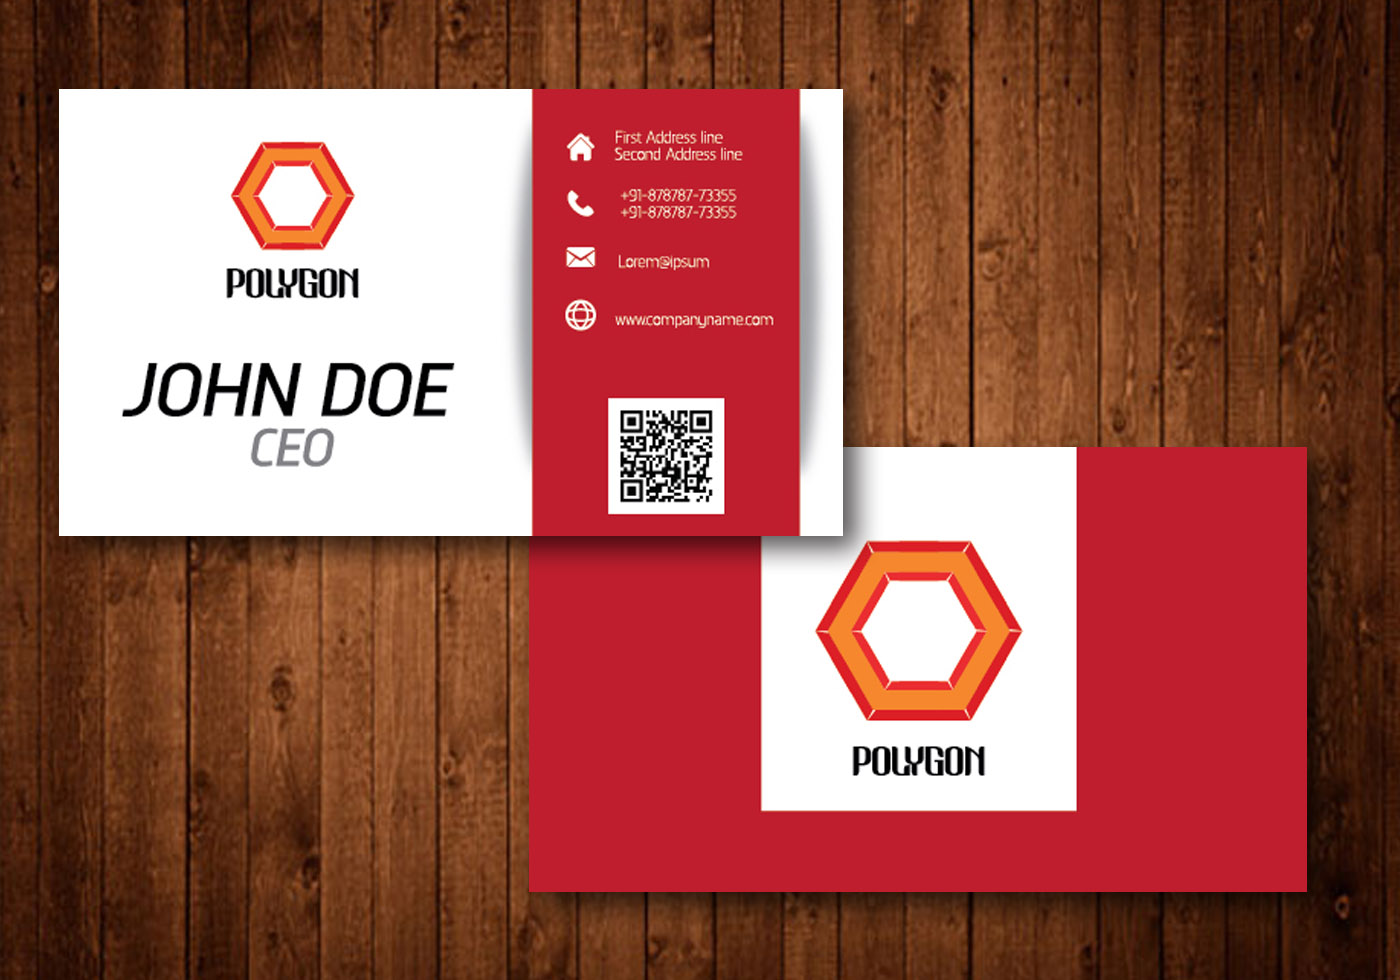 Creative business card download free vector art stock graphics creative business card download free vector art stock graphics images reheart Images